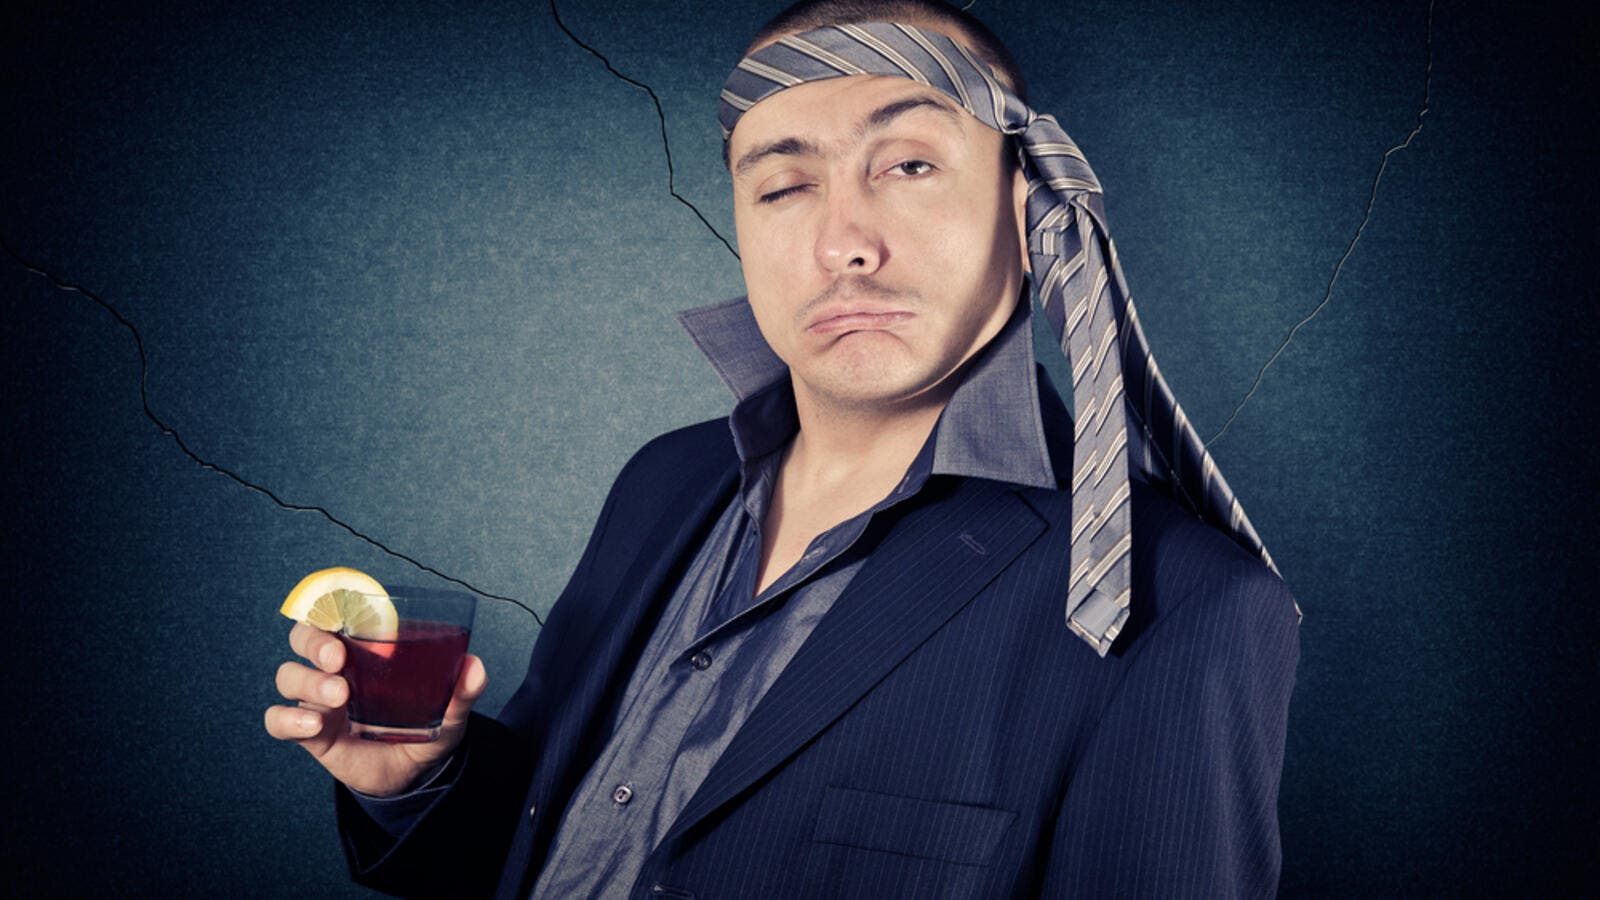 """I don't remember anything. I only gained consciousness in the police station."" (Shutterstock)"